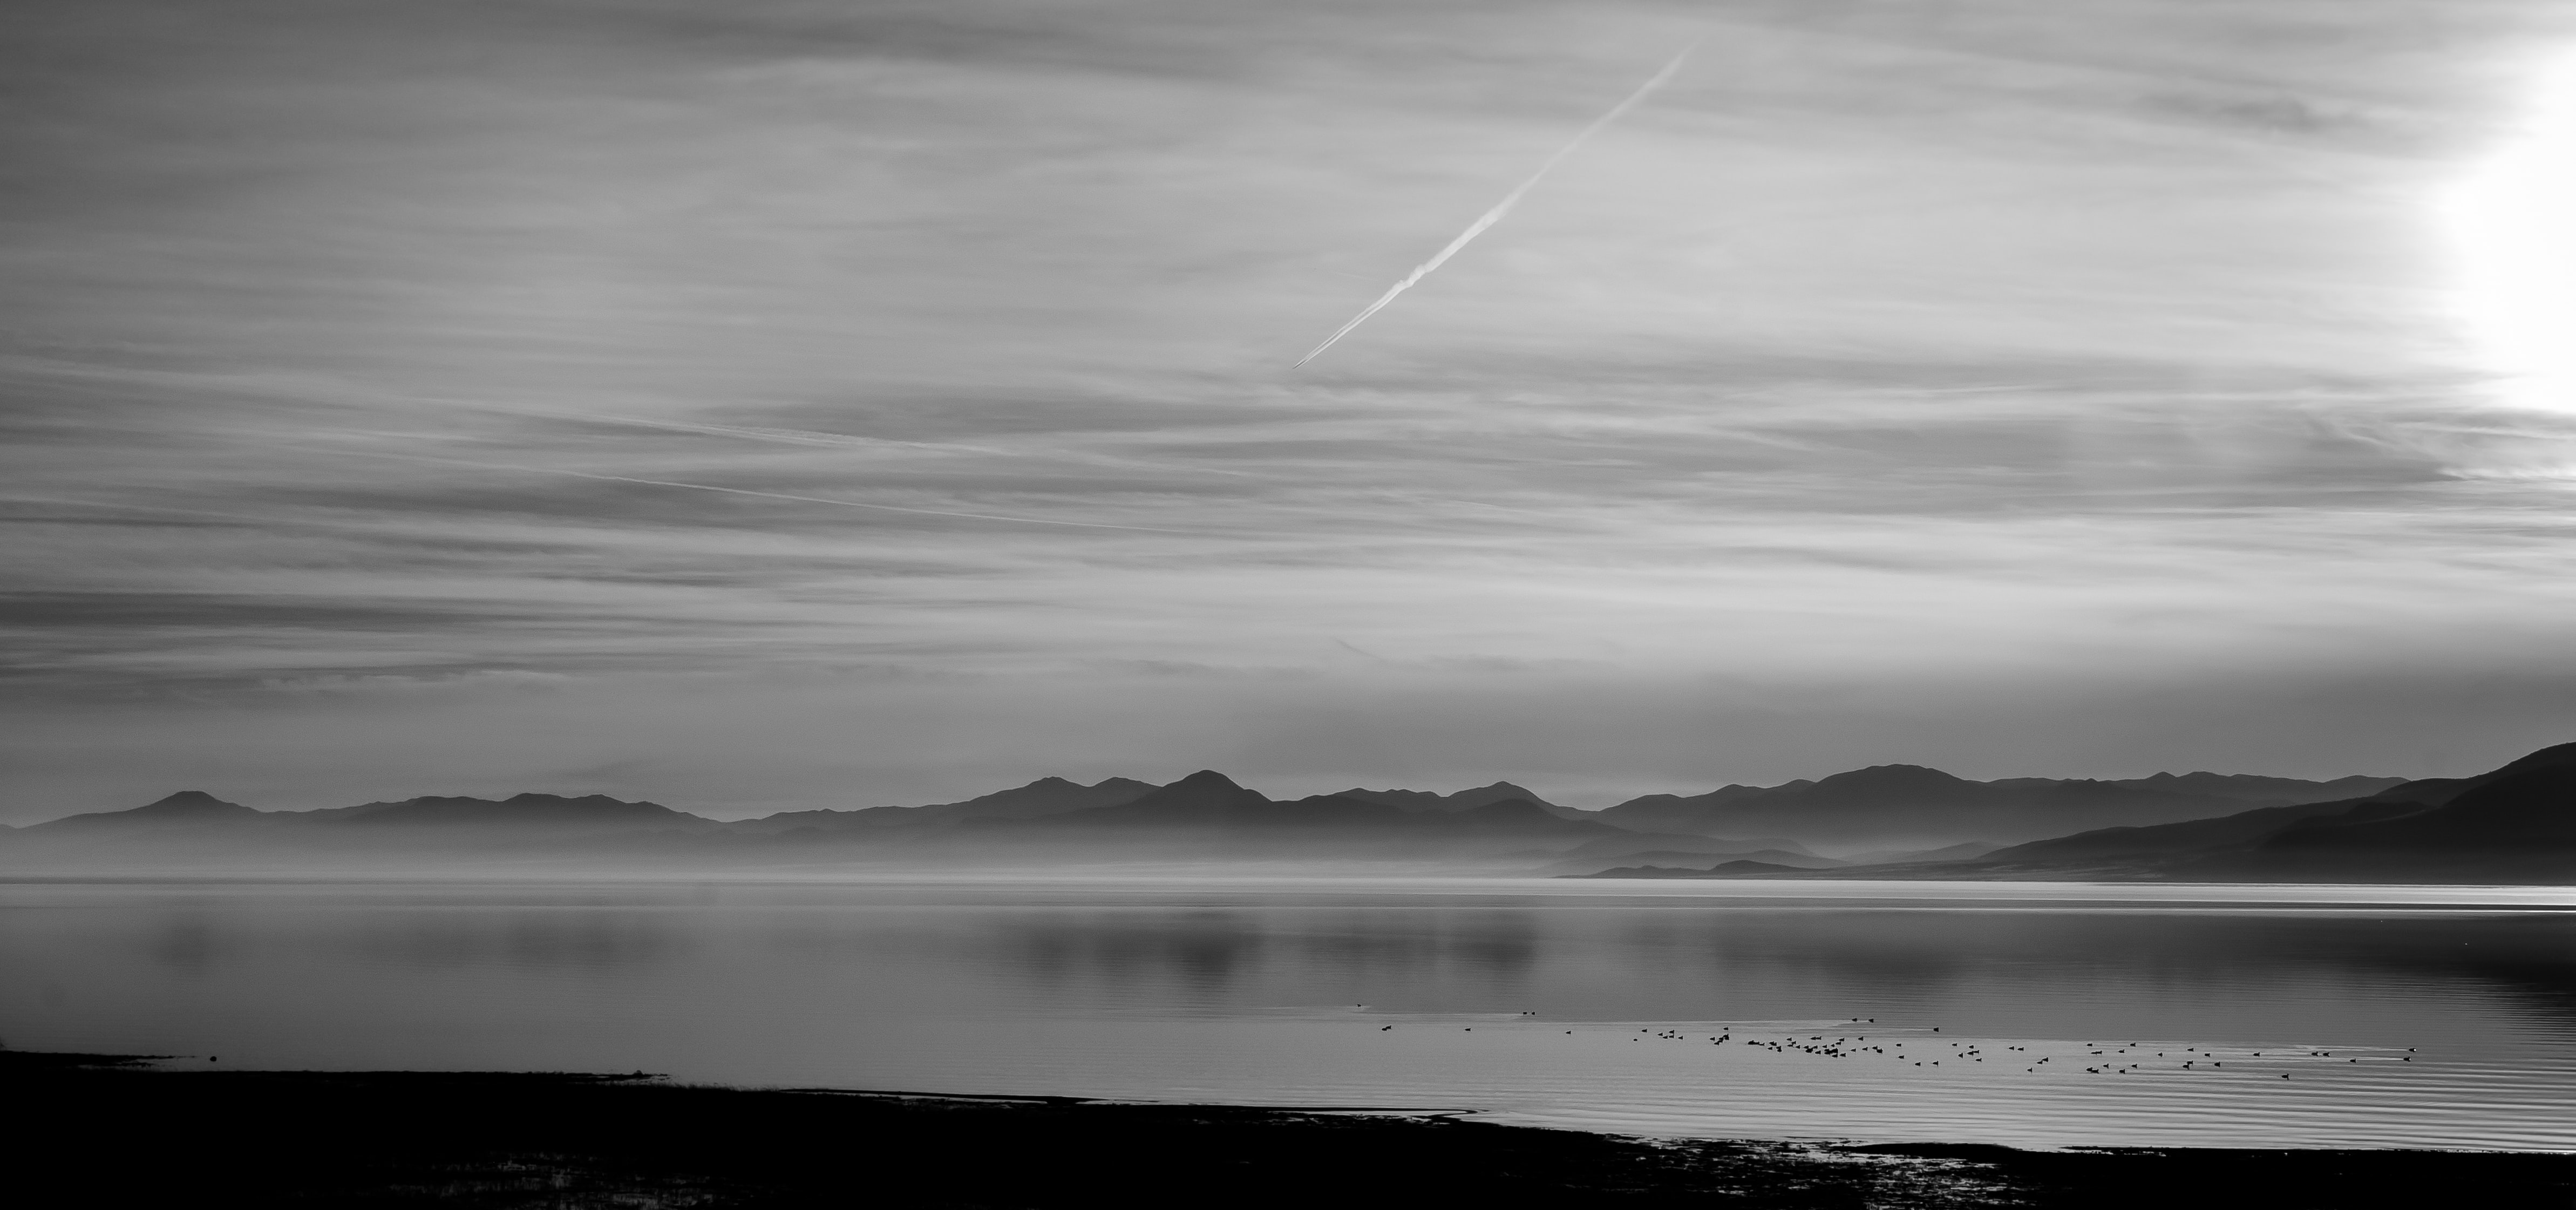 grayscale photography of ocean and island